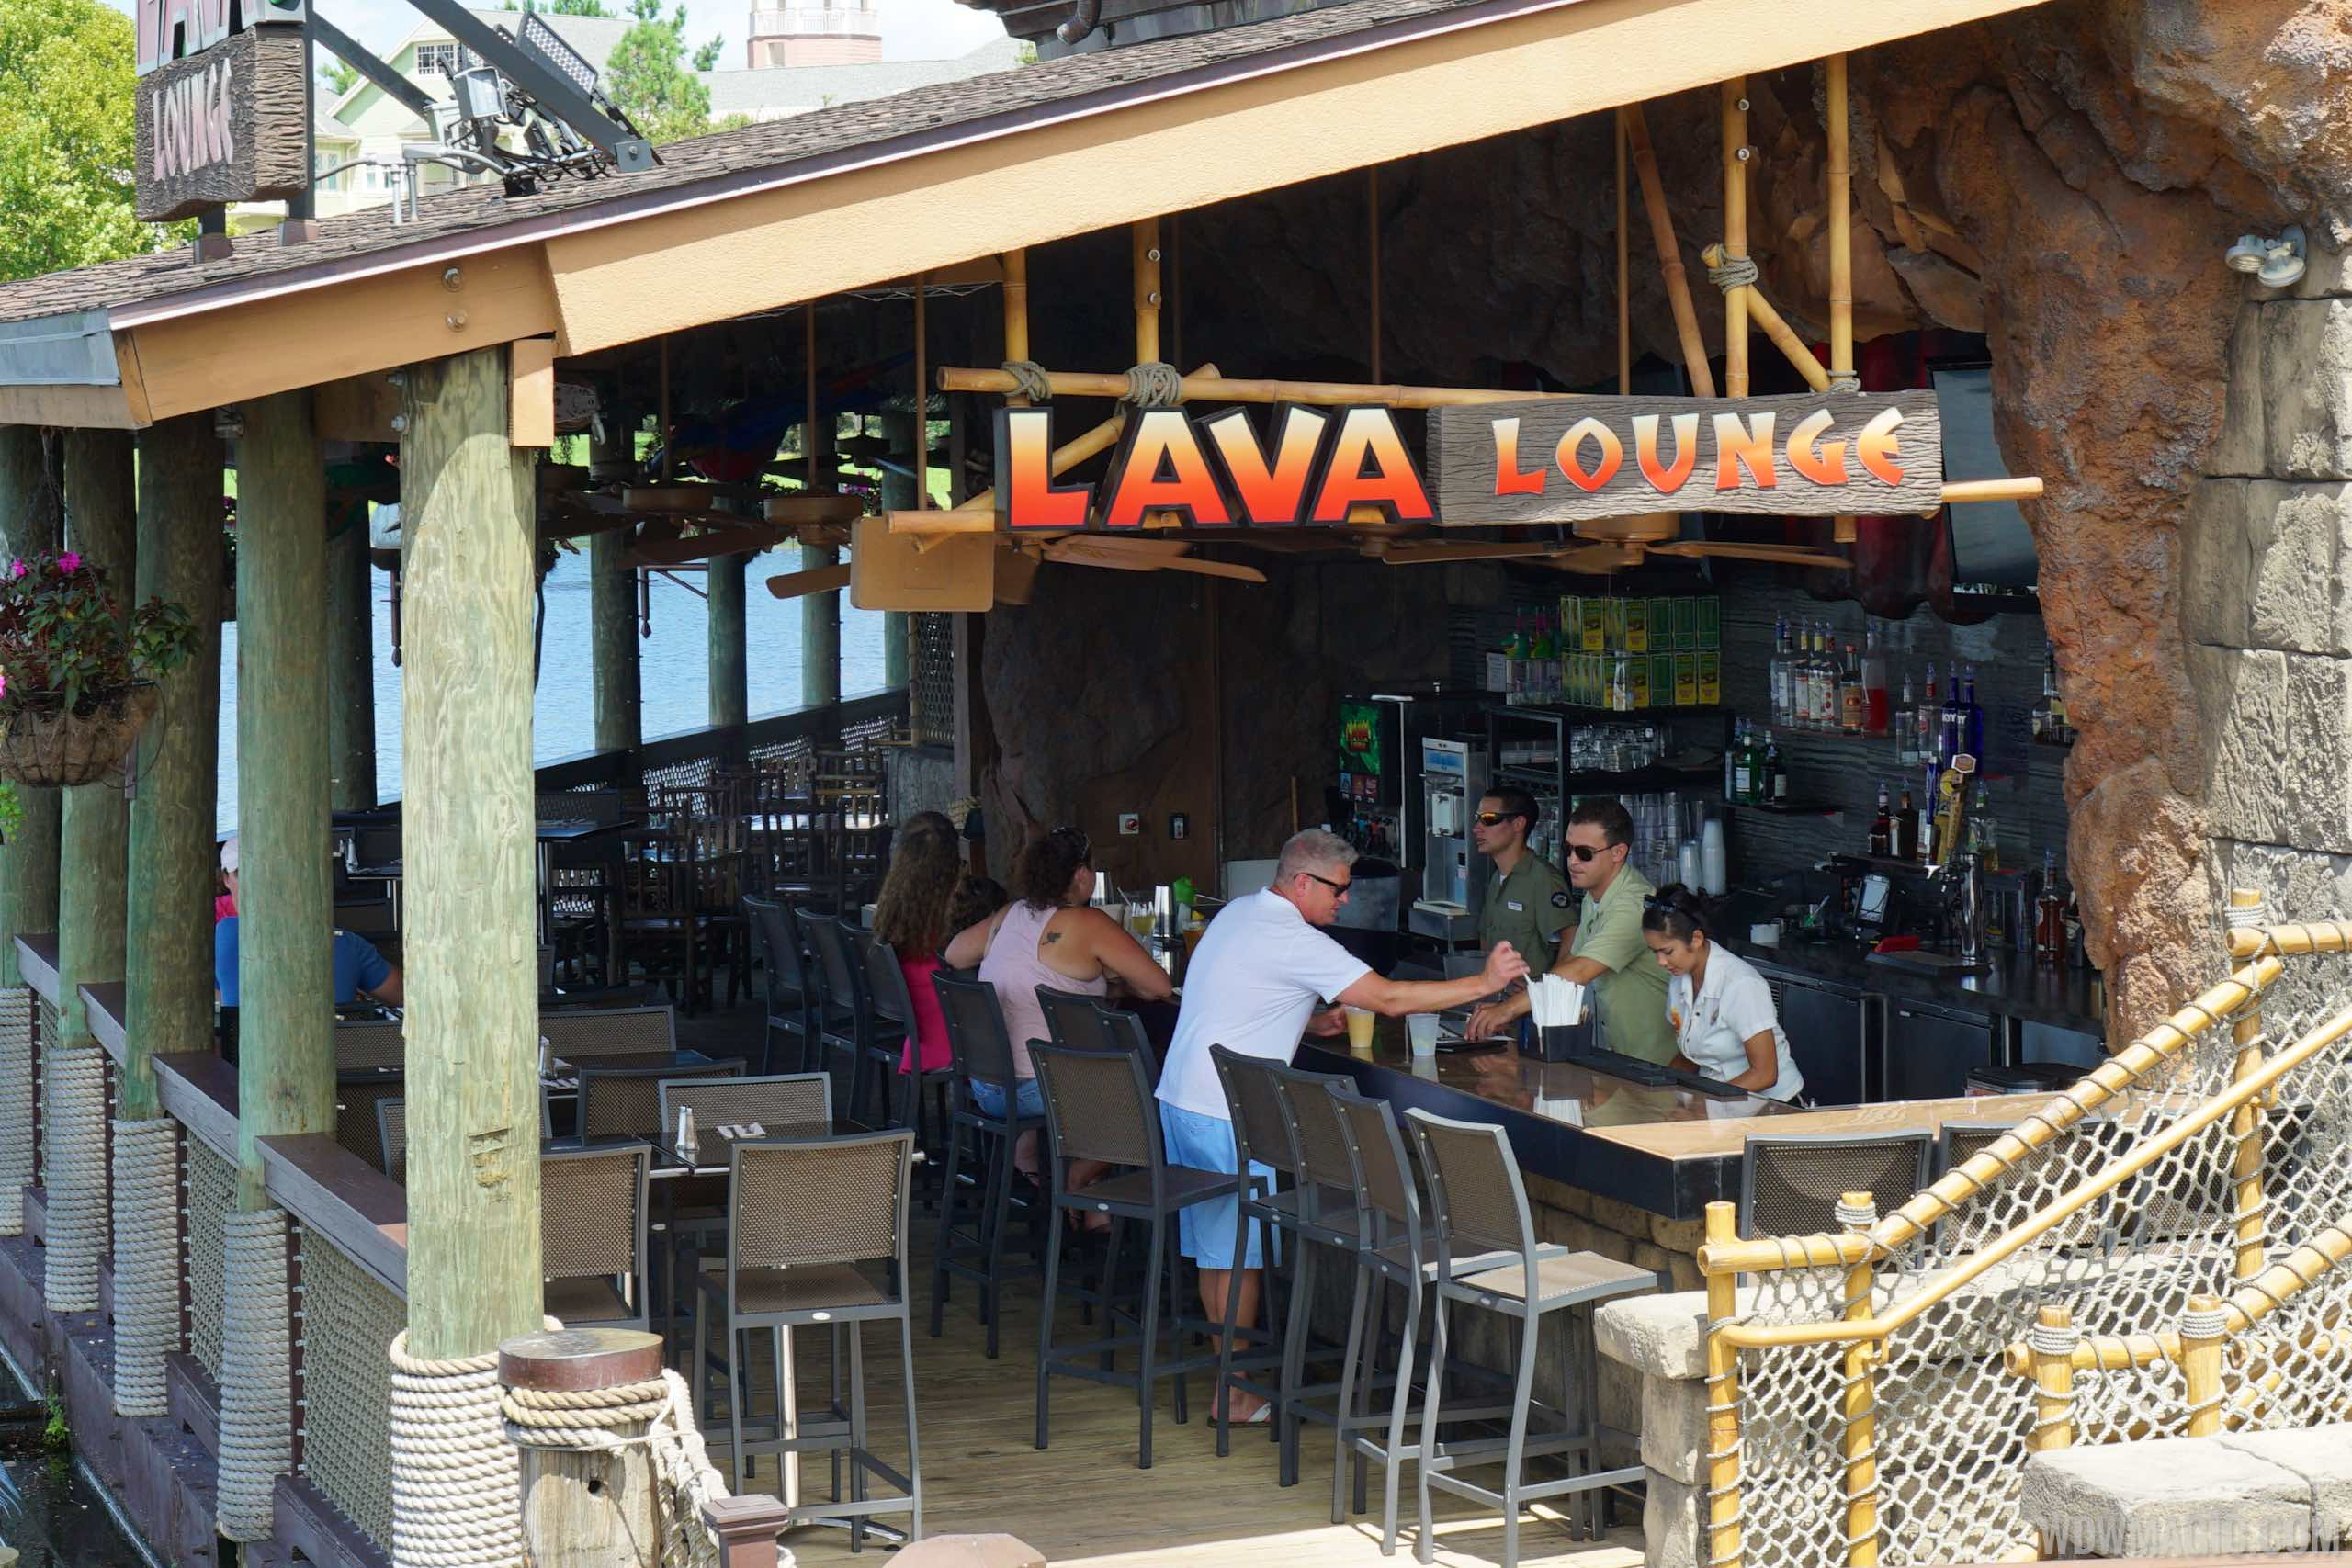 Lava Lounge overview